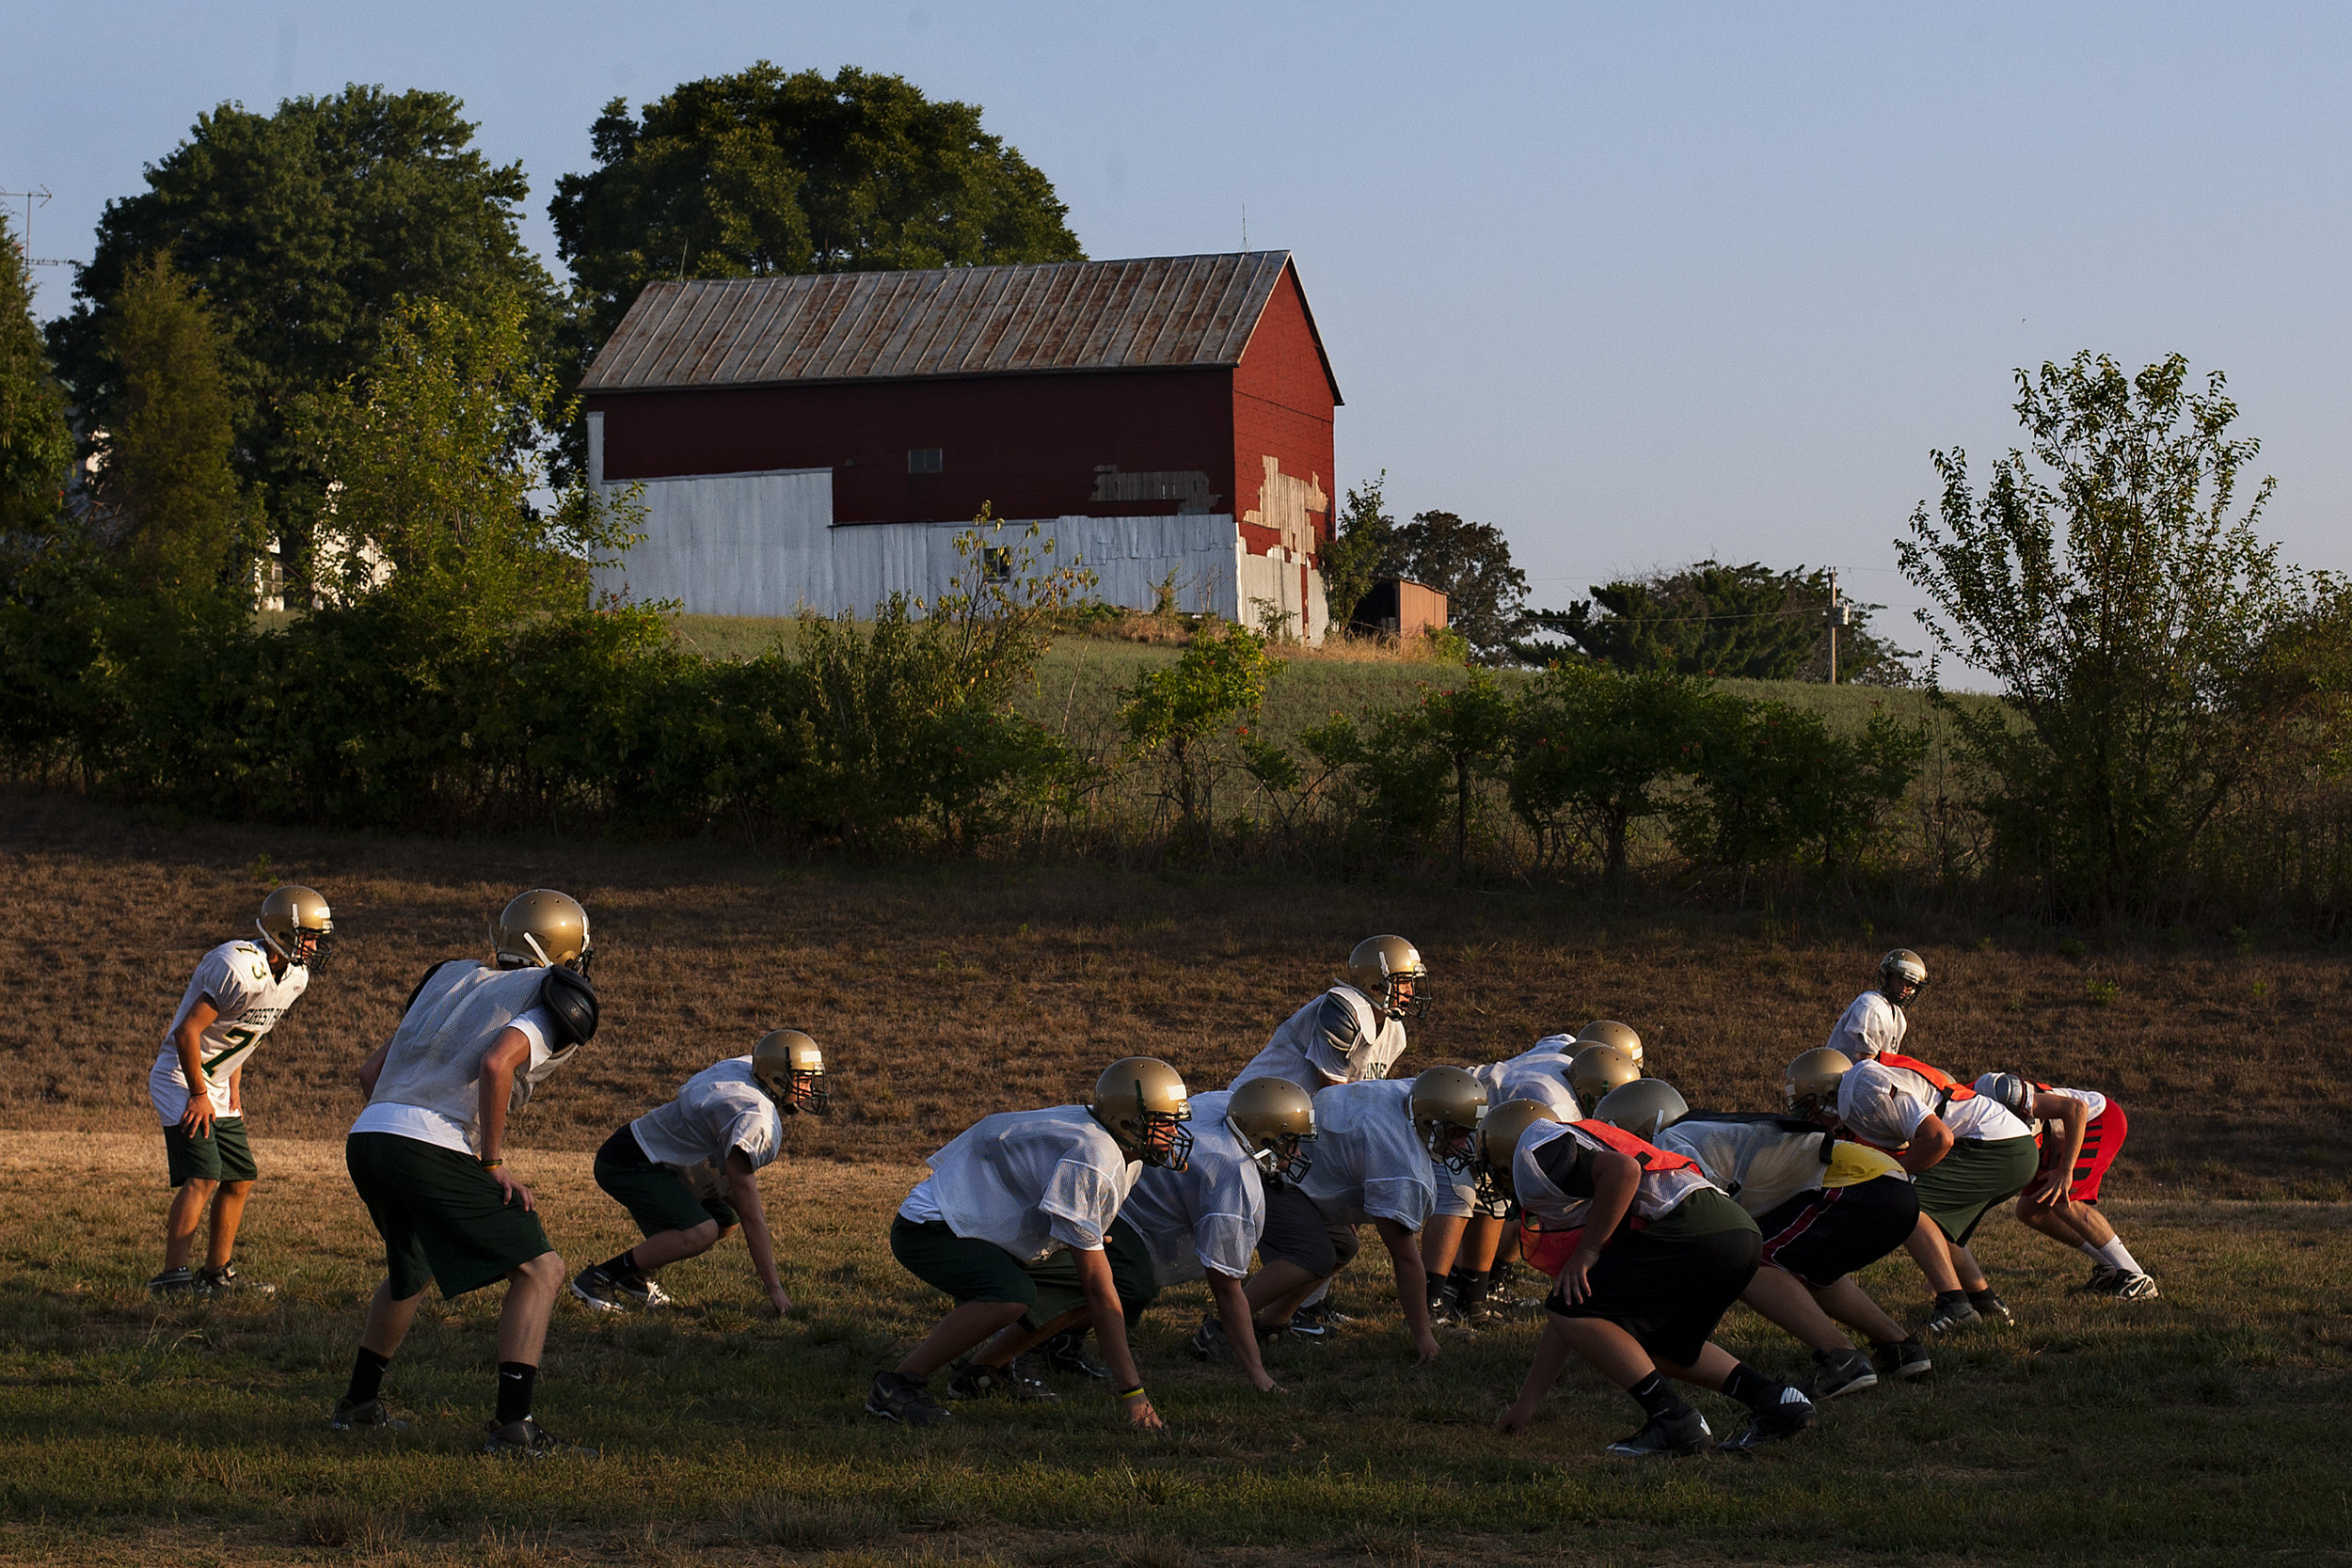 IHSAA rules for two-a-day practices prohibit the teams from running full contact drills on the first two days of practices. The Forest Park team ran through plays the morning of the second day of two-a-day practices.